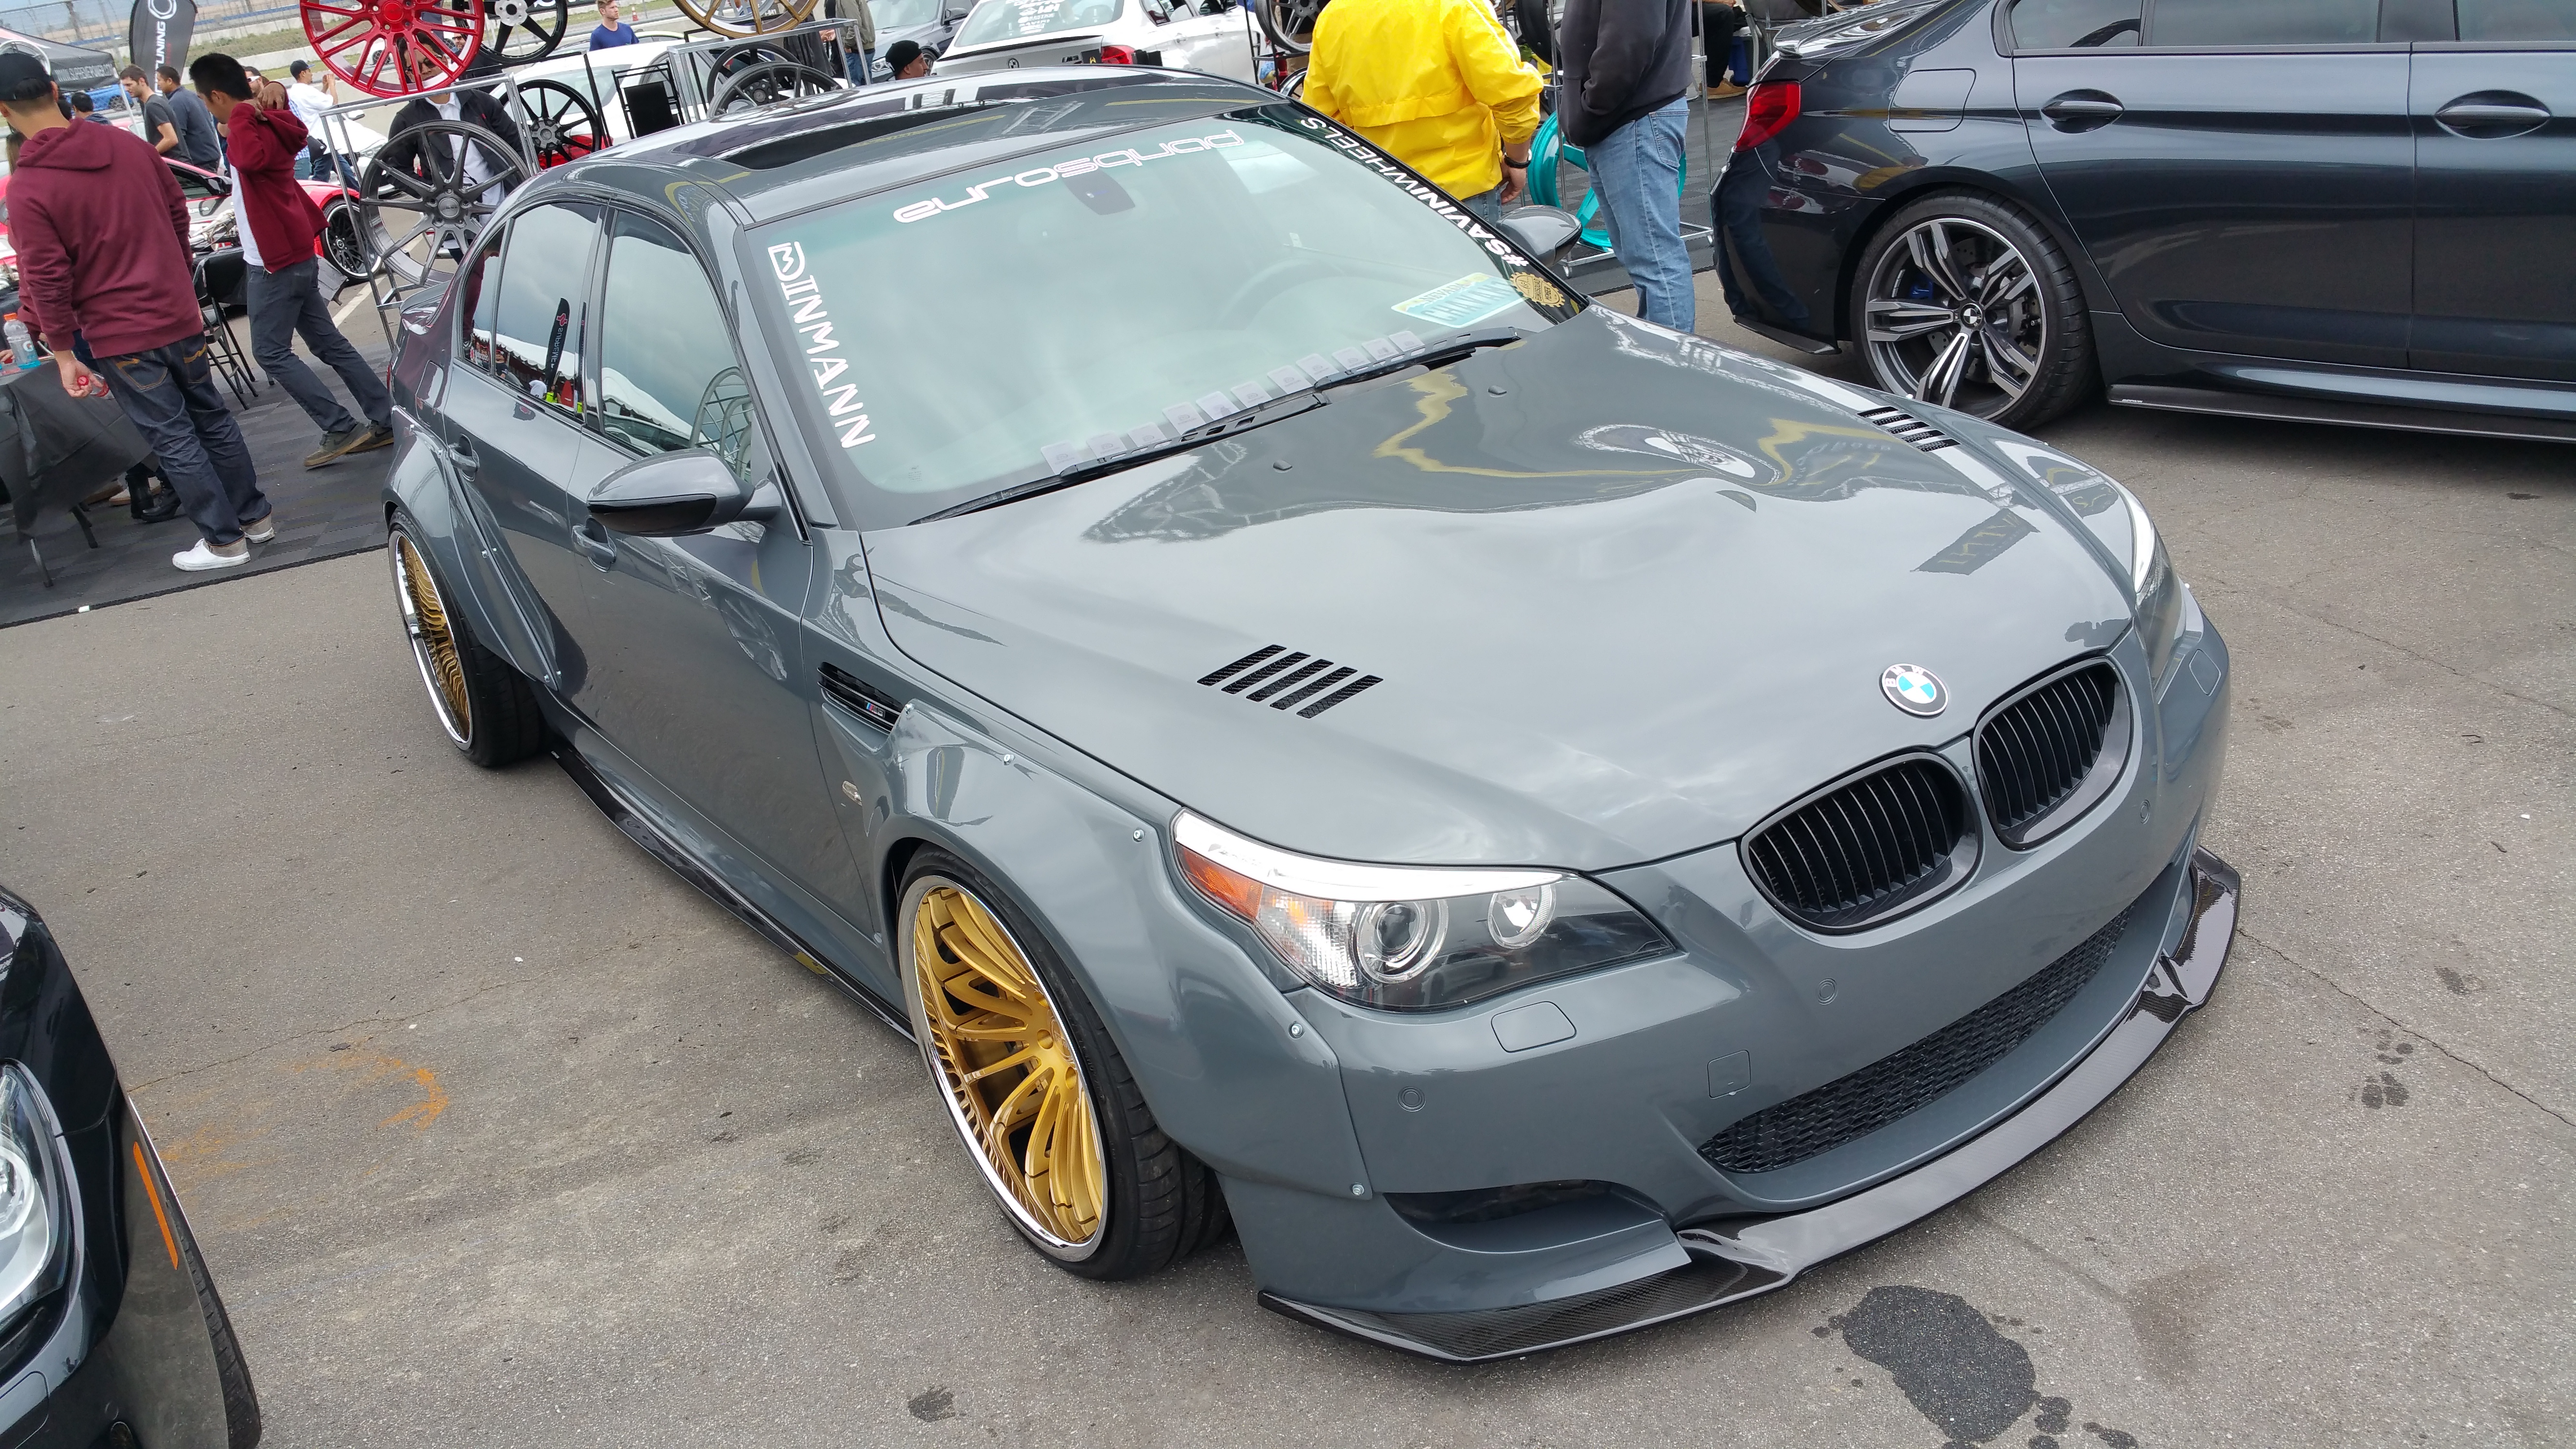 custom build e60m5 by dinmann   BMW M5 Forum and M6 Forums